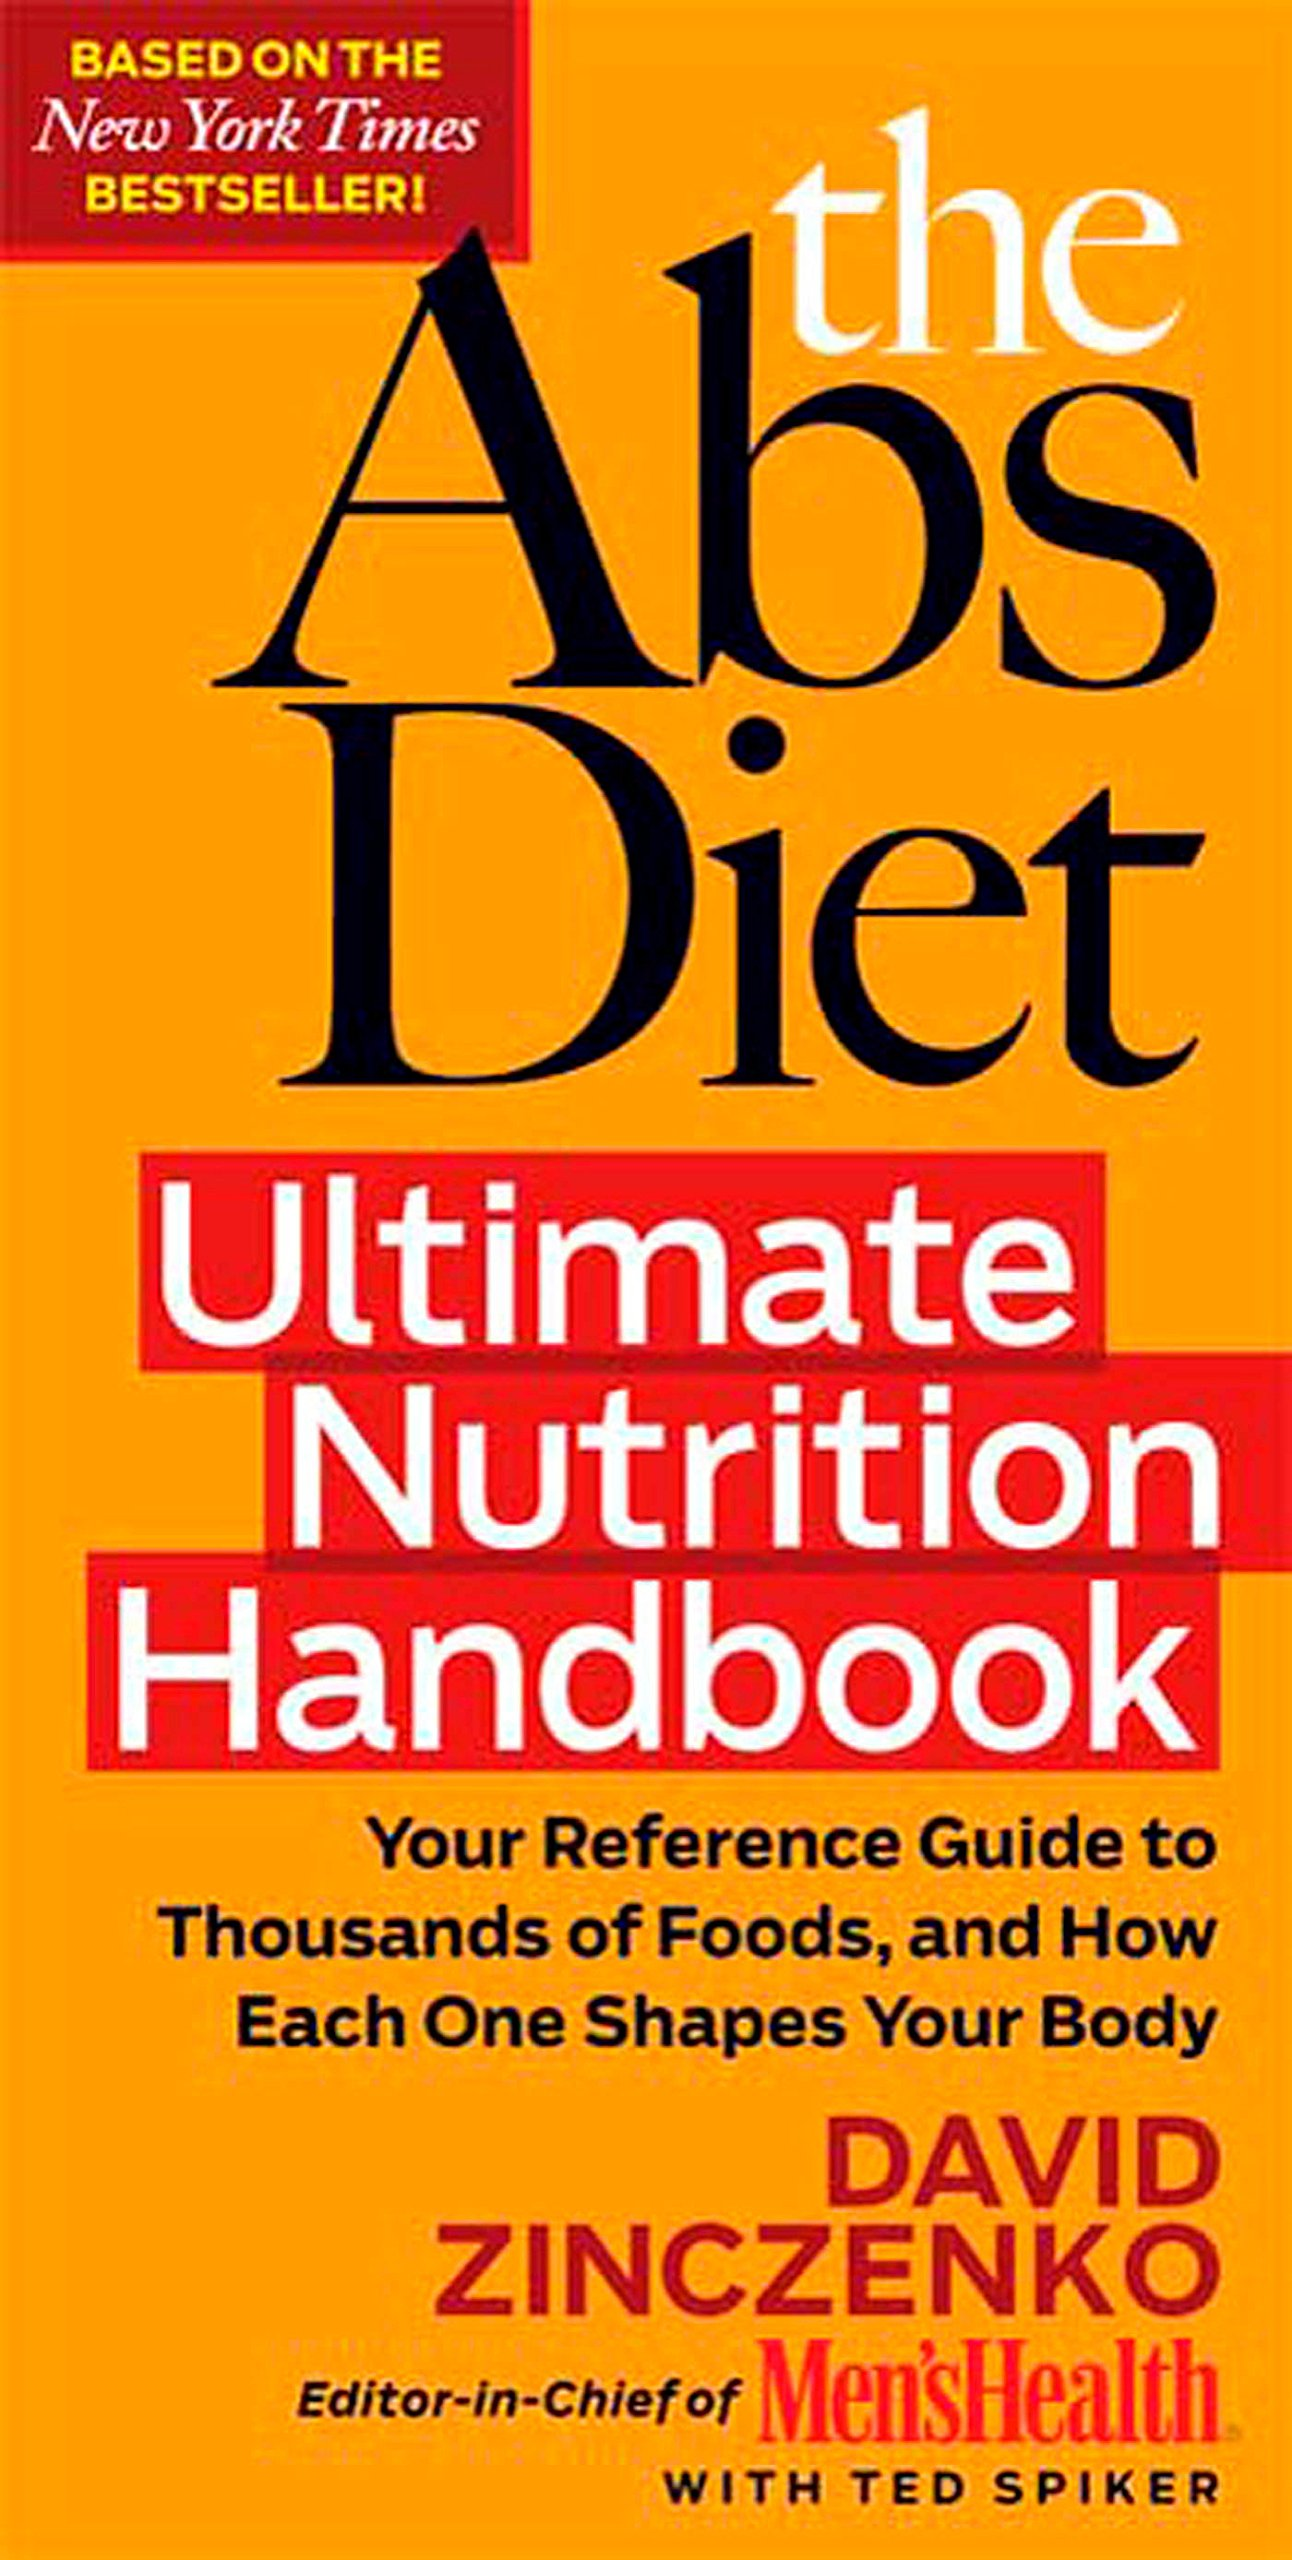 04db0a393fb1f The Abs Diet Ultimate Nutrition Handbook  Your Reference Guide to ...